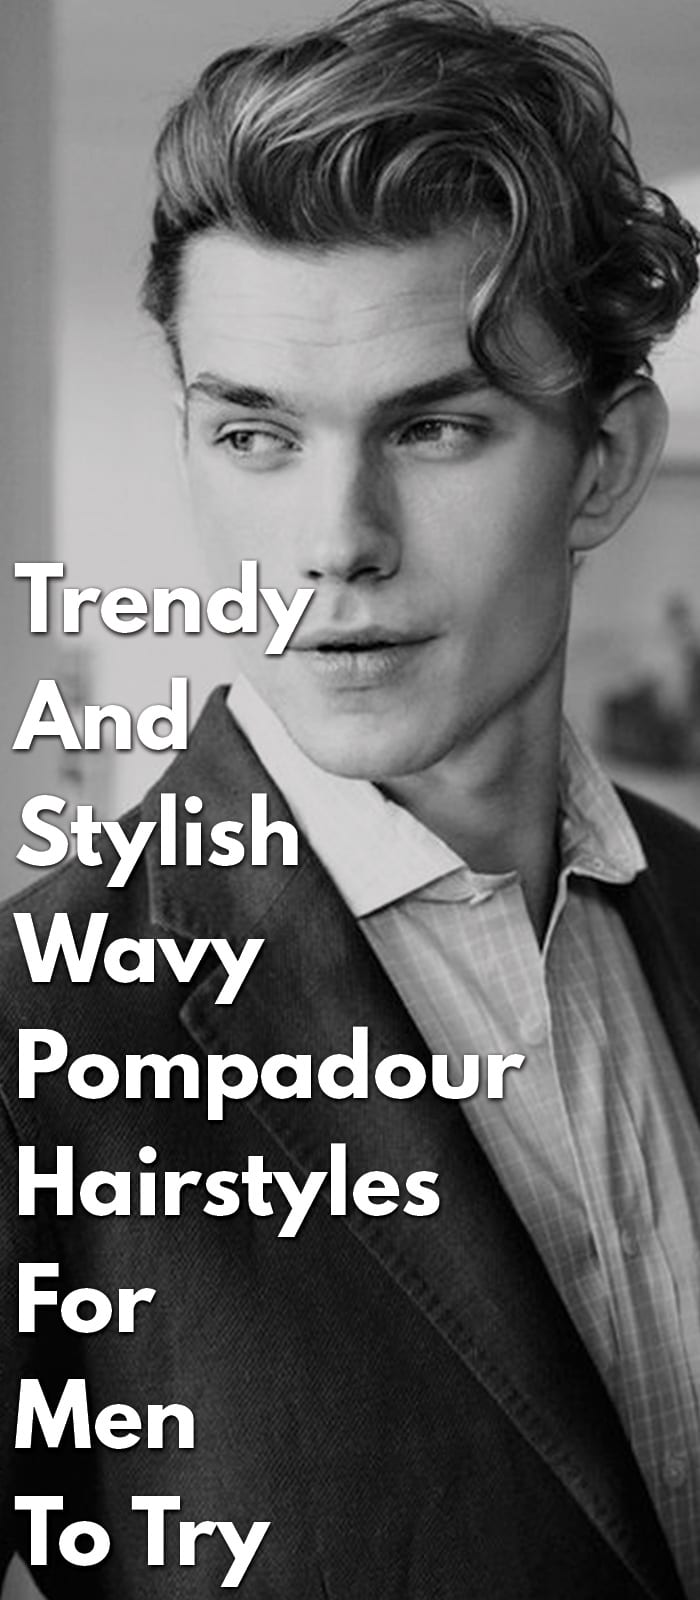 Trendy And Stylish Wavy Pompadour Hairstyles